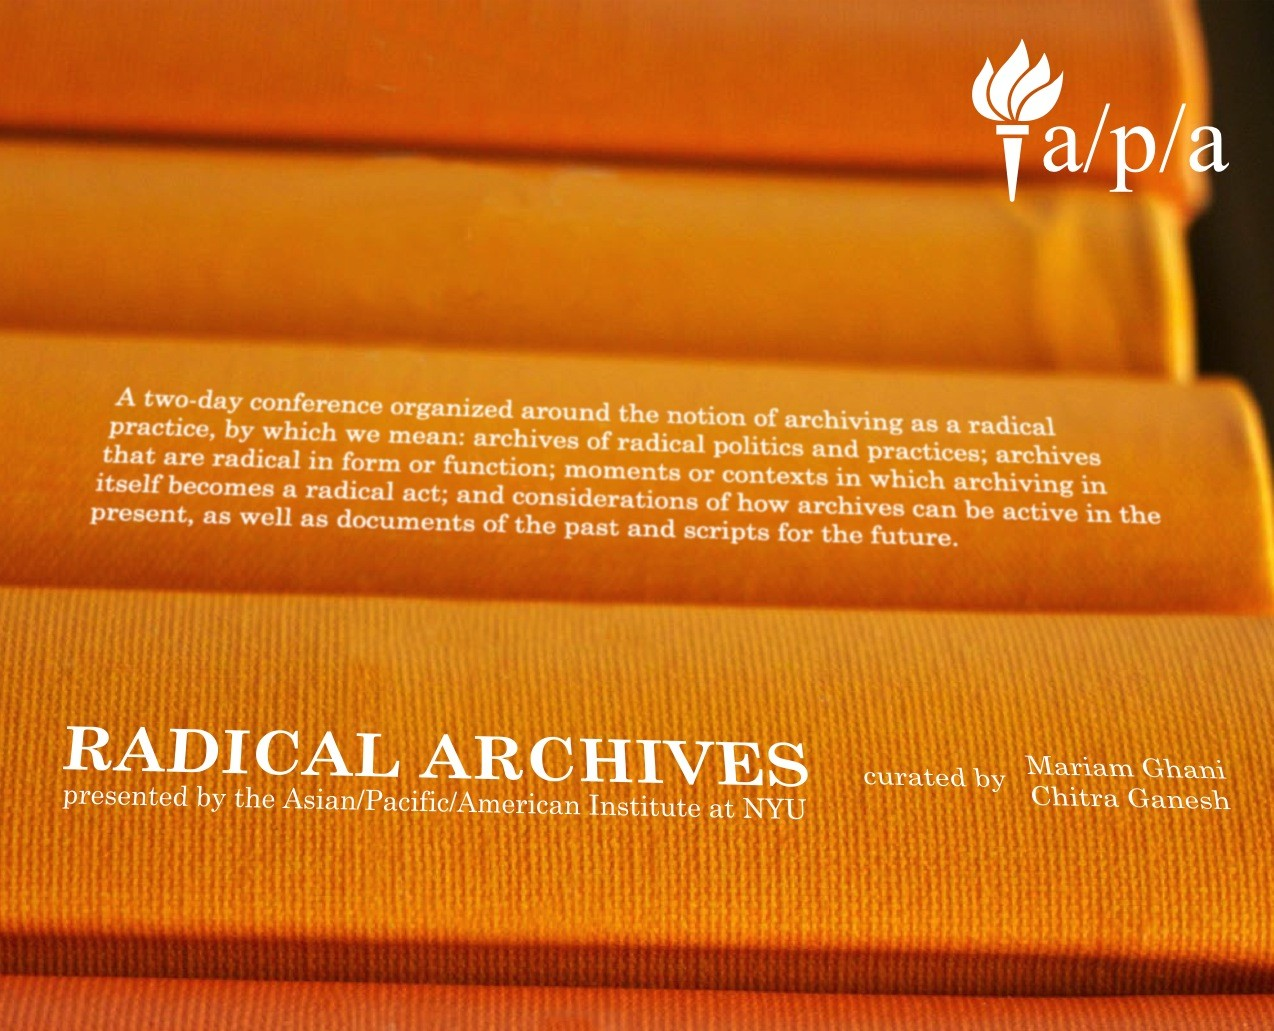 Radical Archives Spring 2014 flyer